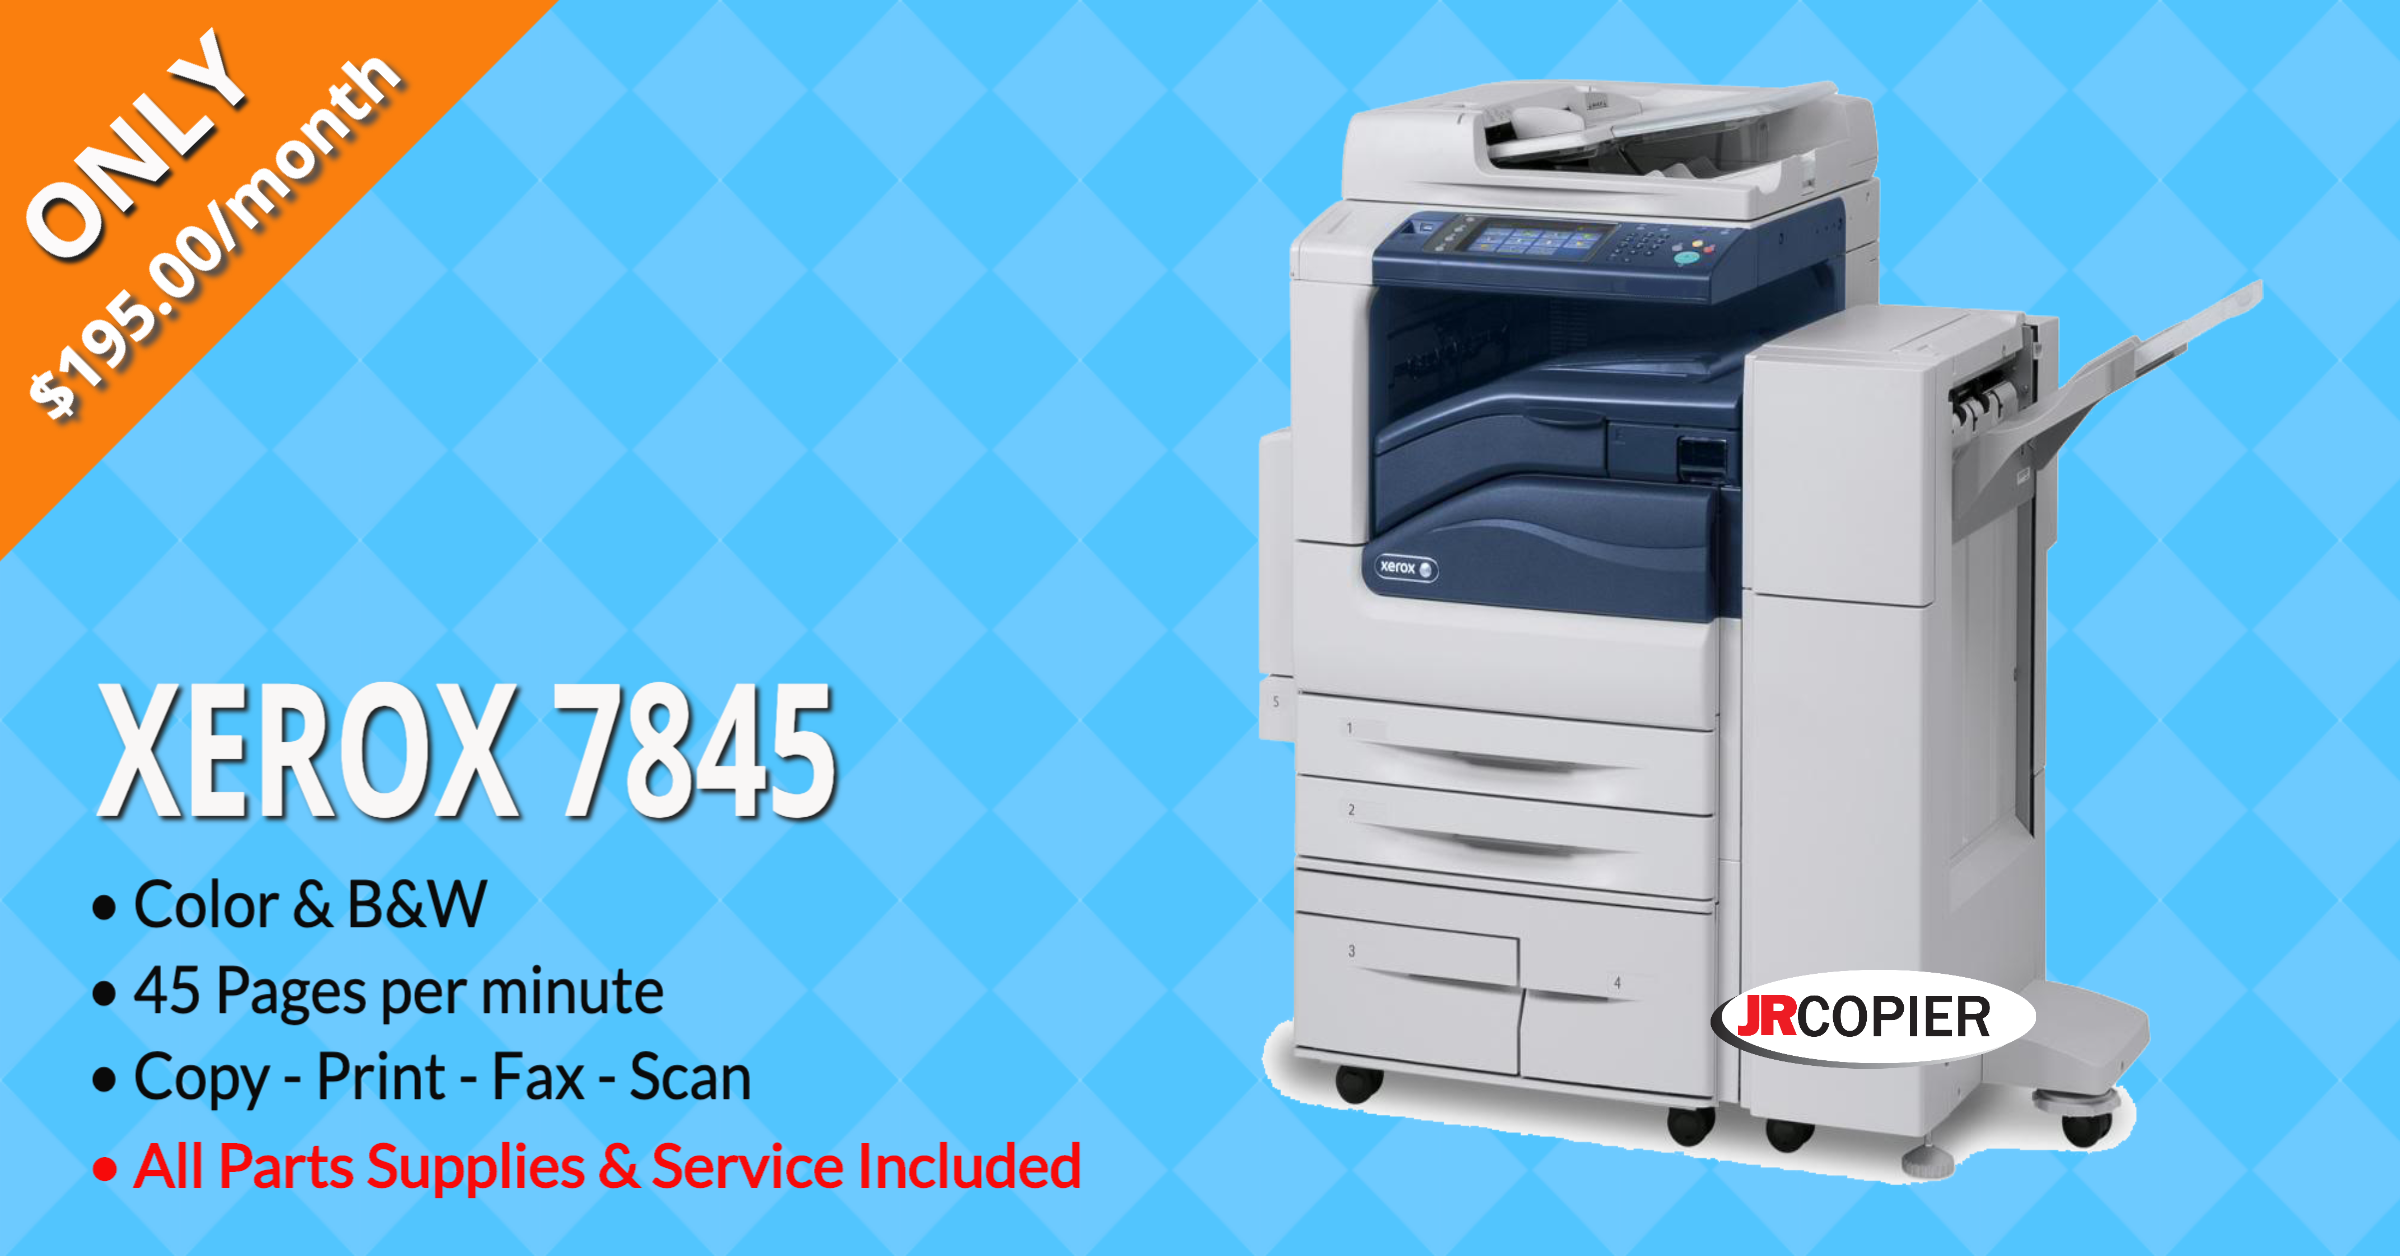 Printer Rental Services 52205